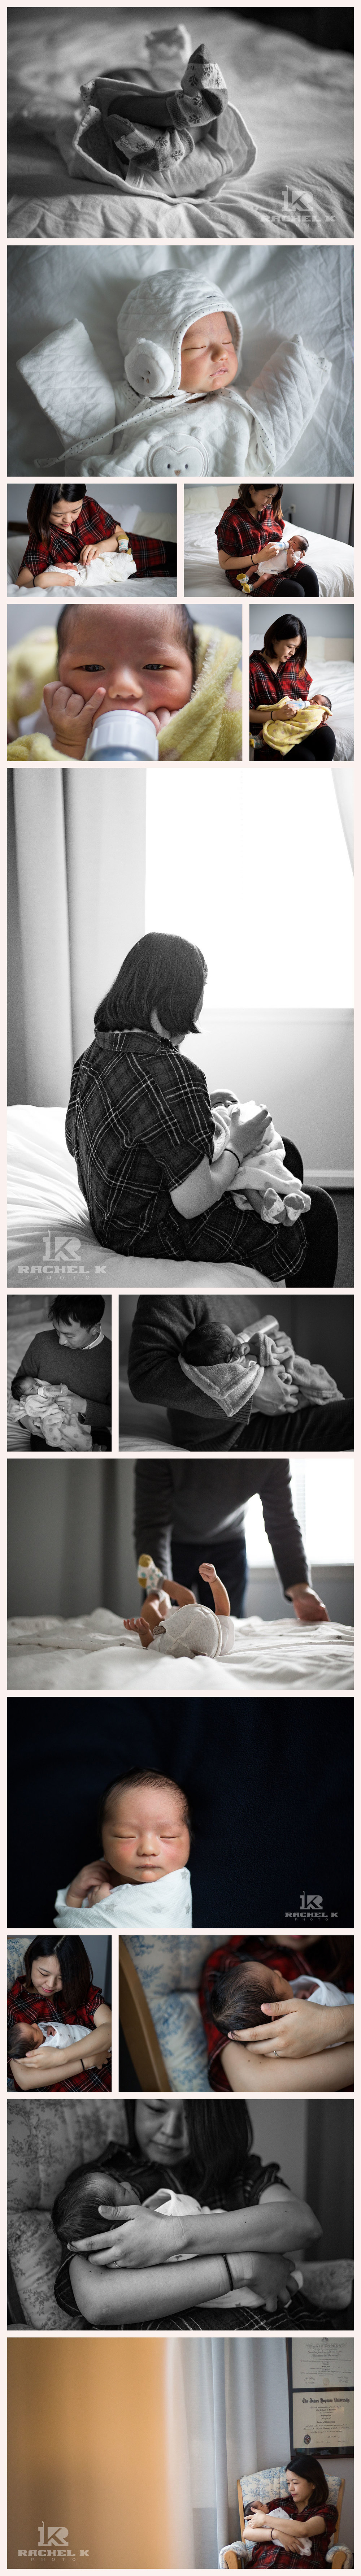 Northern Virginia's best newborn lifestyle photographer Rachel K Photo